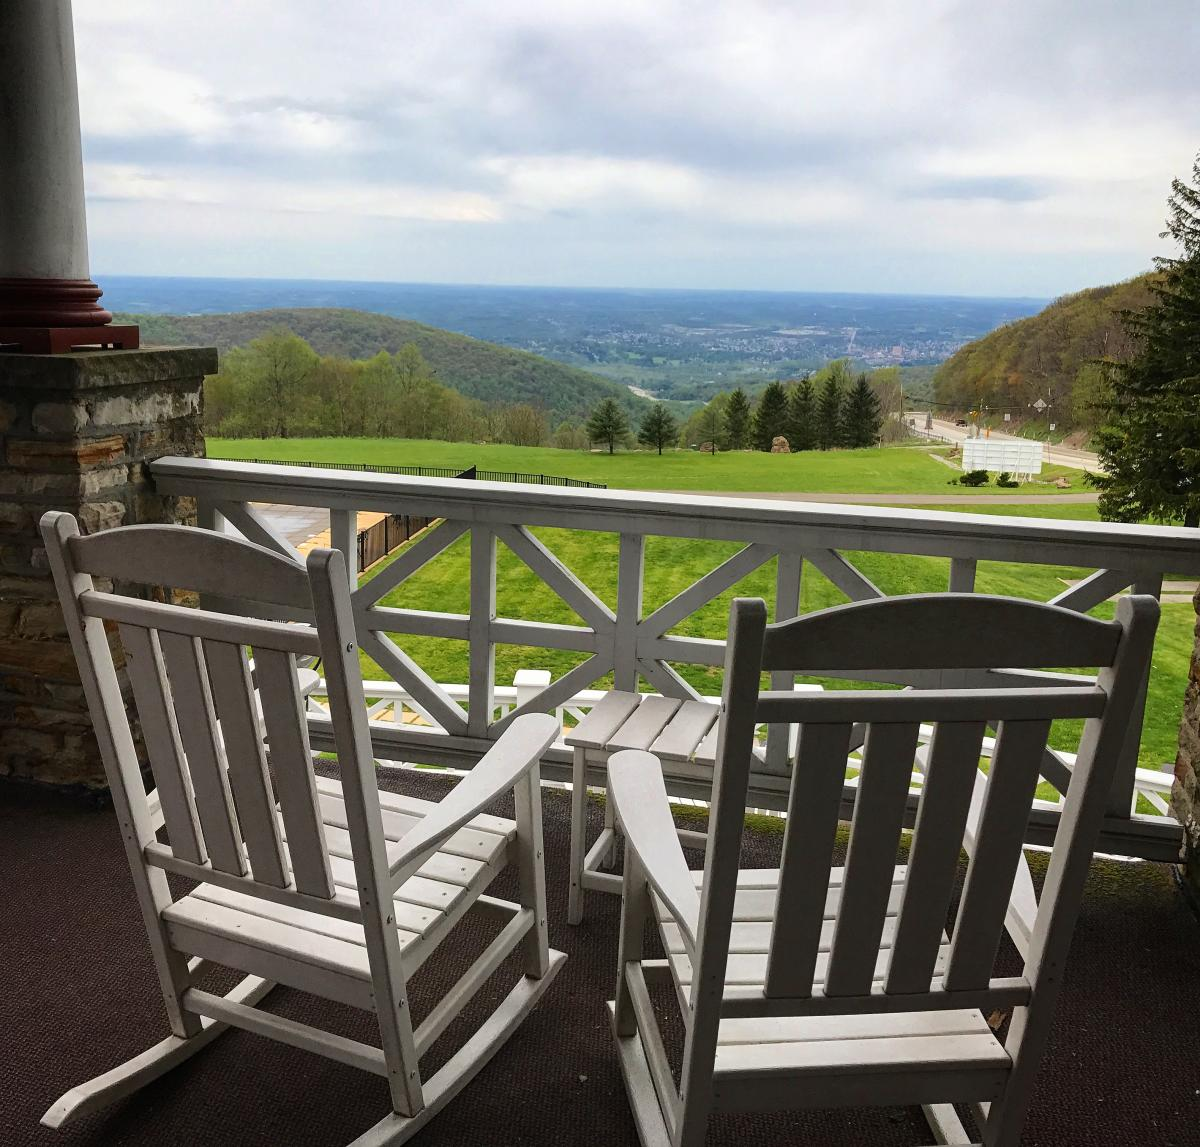 View from the porch at The Historic Summit Inn